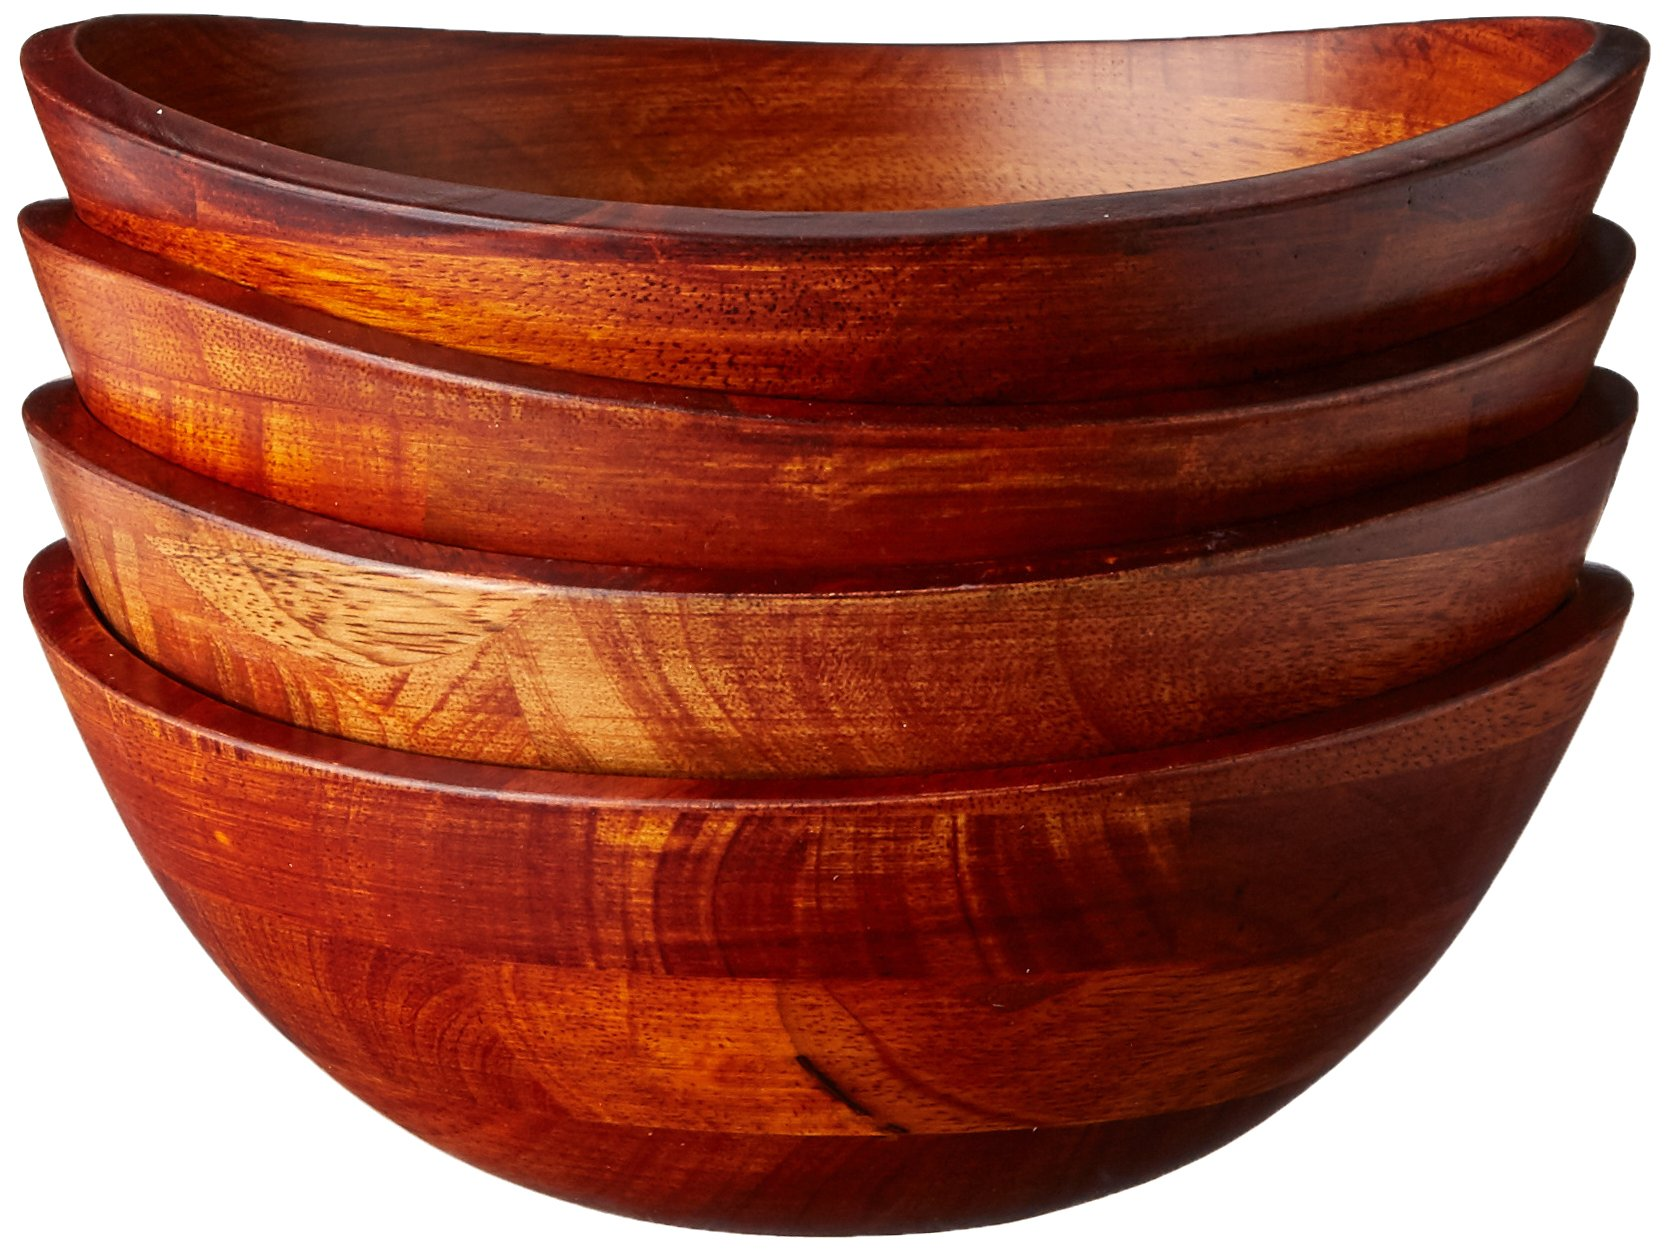 Lipper International 293-4 Cherry Finished Wavy Rim Serving Bowls for Fruits or Salads, Matte, Small, 7.5'' x 7.25'' x 3'', Set of 4 Bowls